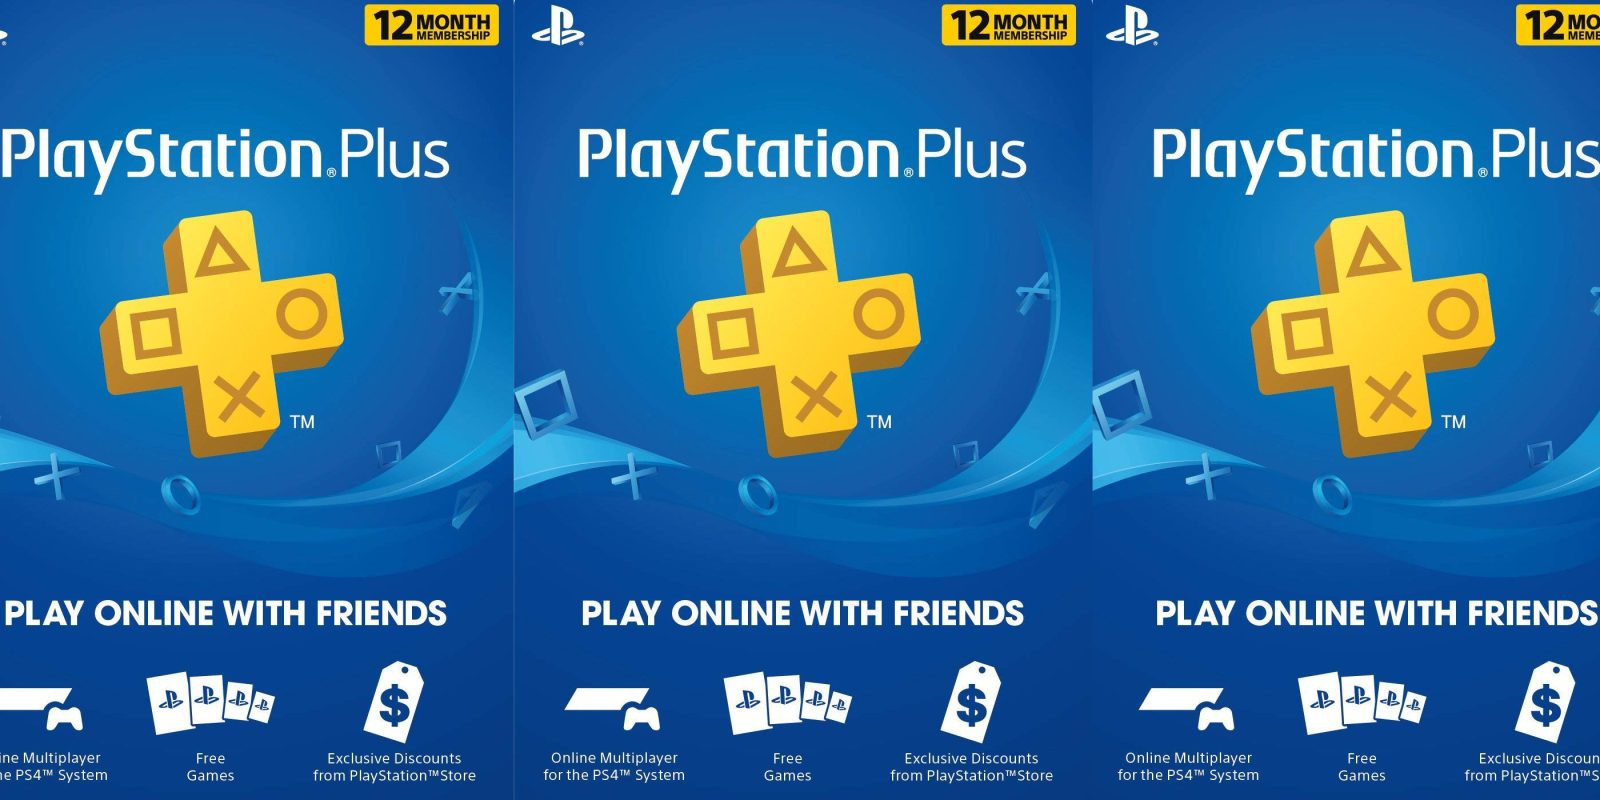 1-year PlayStation Plus memberships are now just $38 shipped (Reg. $60)